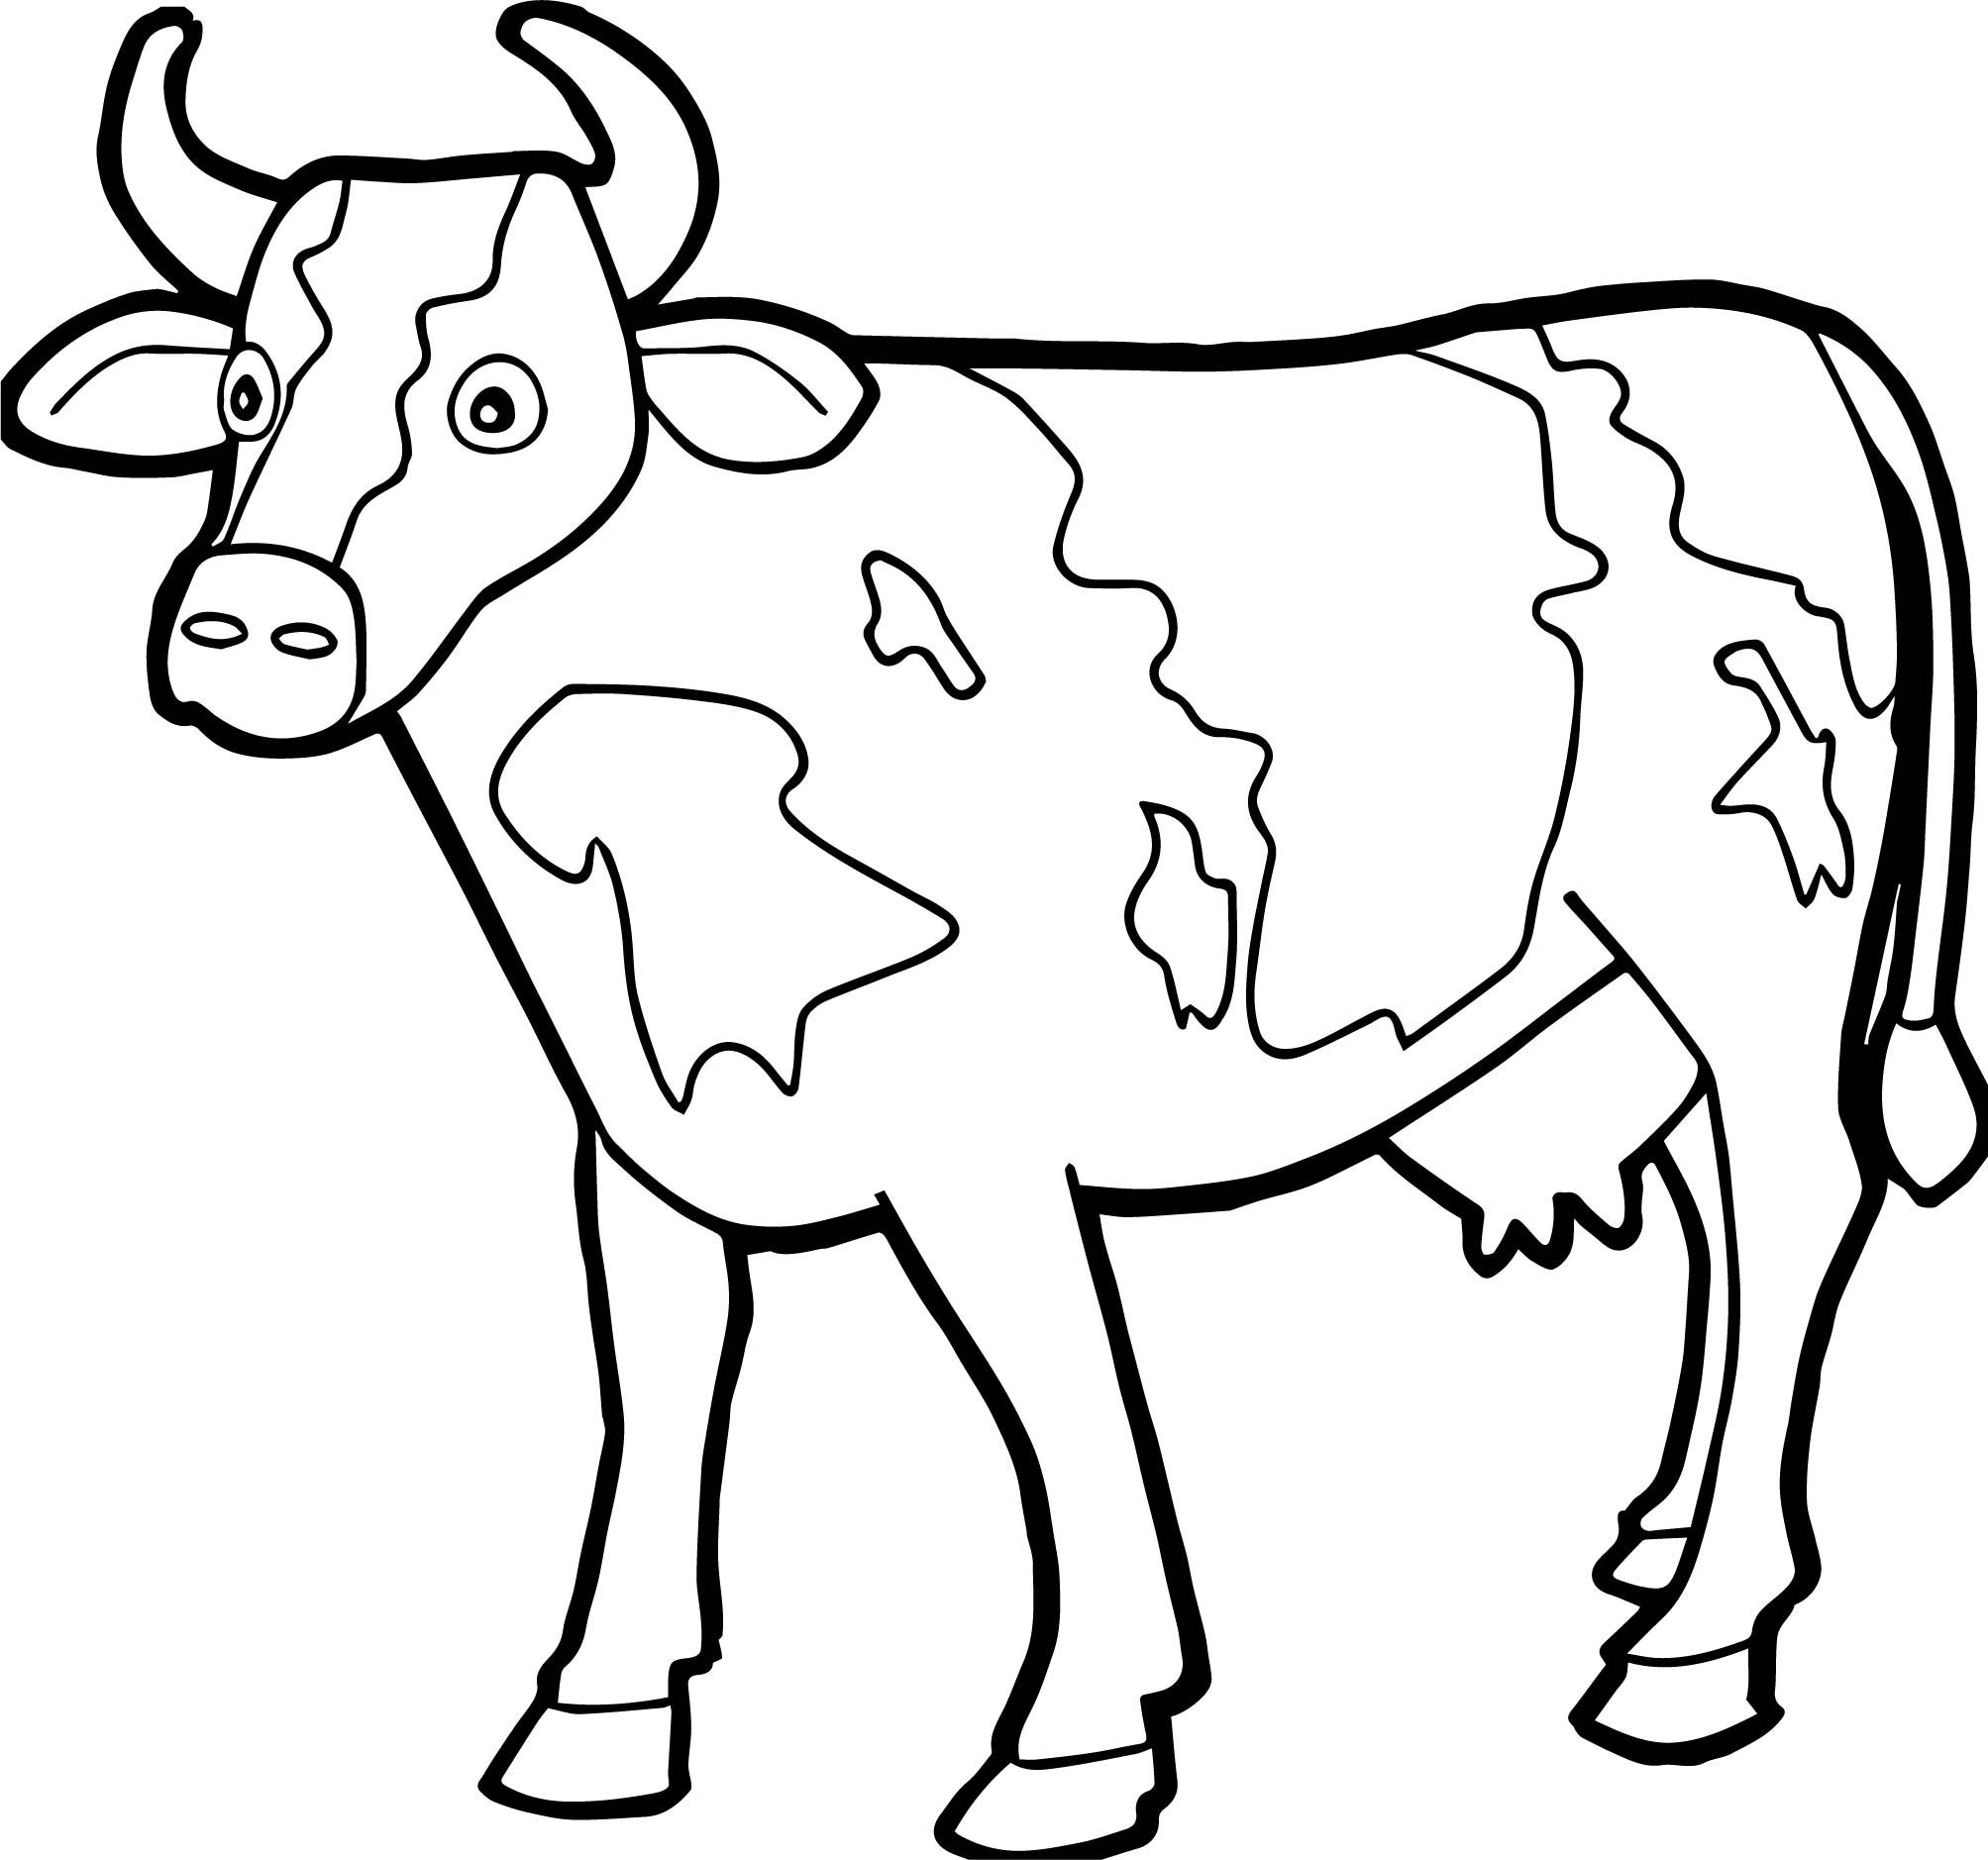 picture of a cow to colour cow coloring pages free printable coloring home a colour cow picture to of